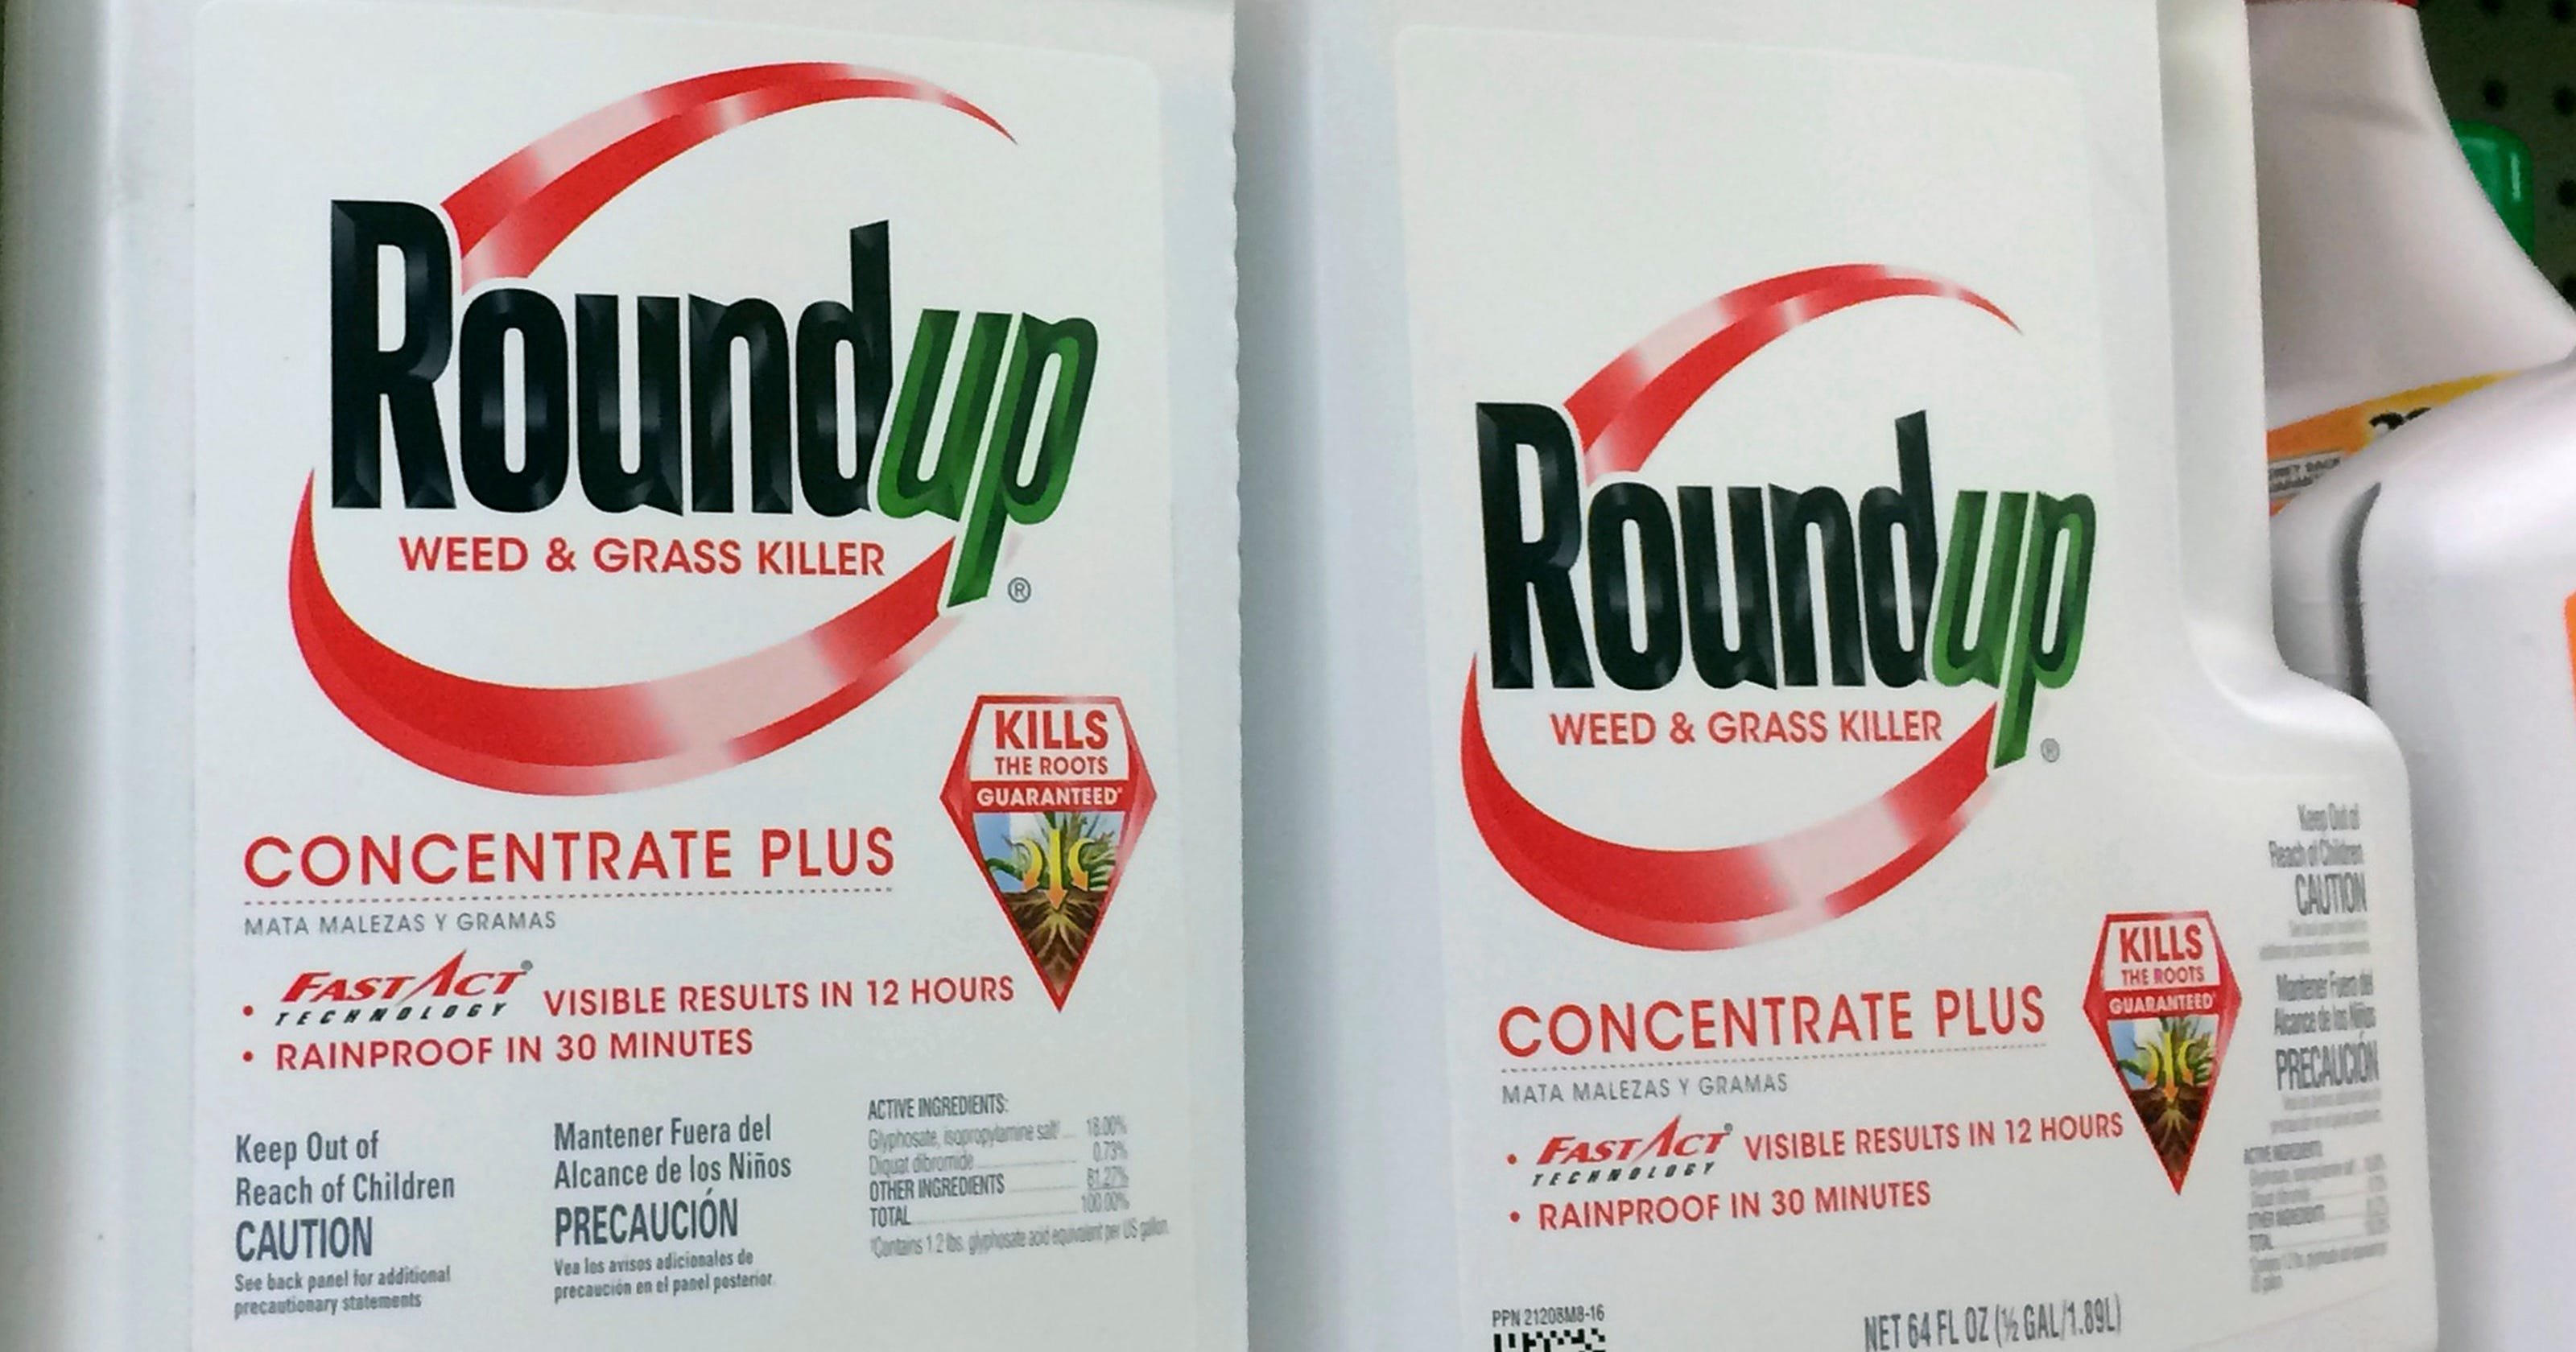 Roundup weed killer was a substantial factor in man's cancer, California jury determines